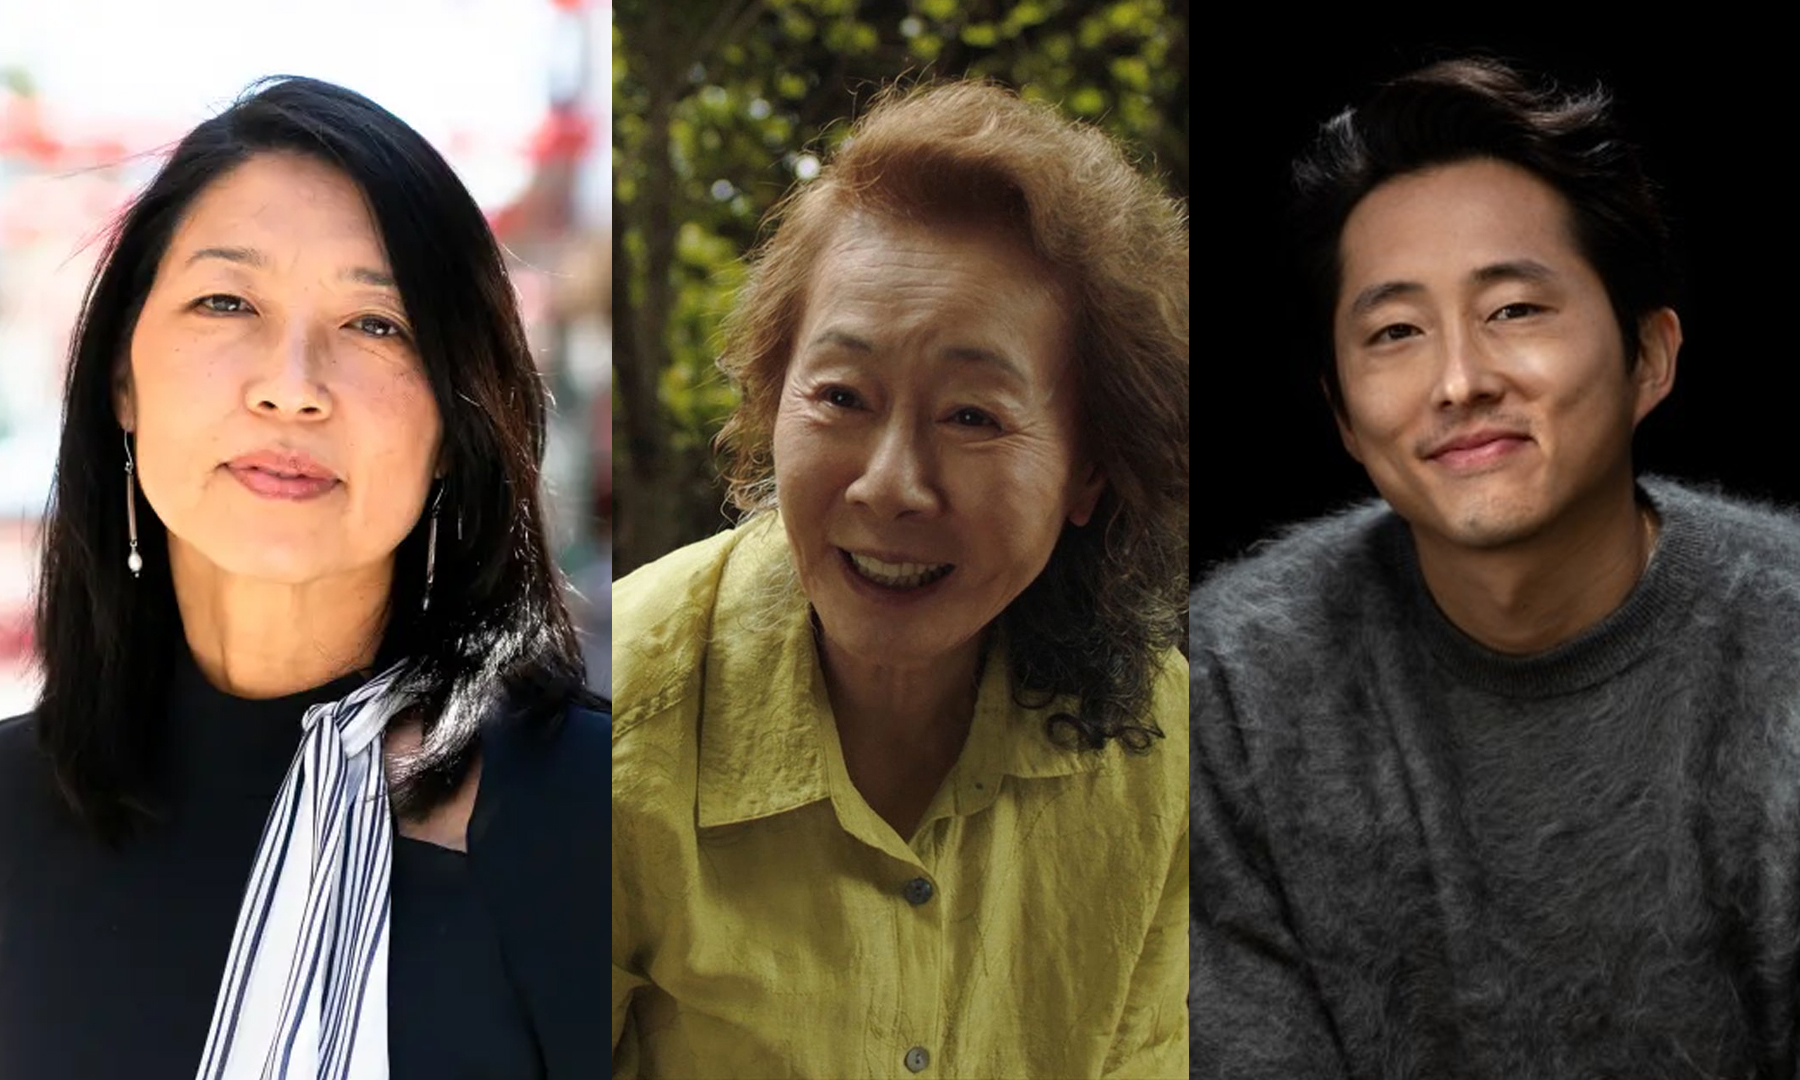 Three Koreans - Cynthia Choi, Youn Yuh Jung, and Steven Yeun - are named in TIME's 100 Most Influential People of 2021